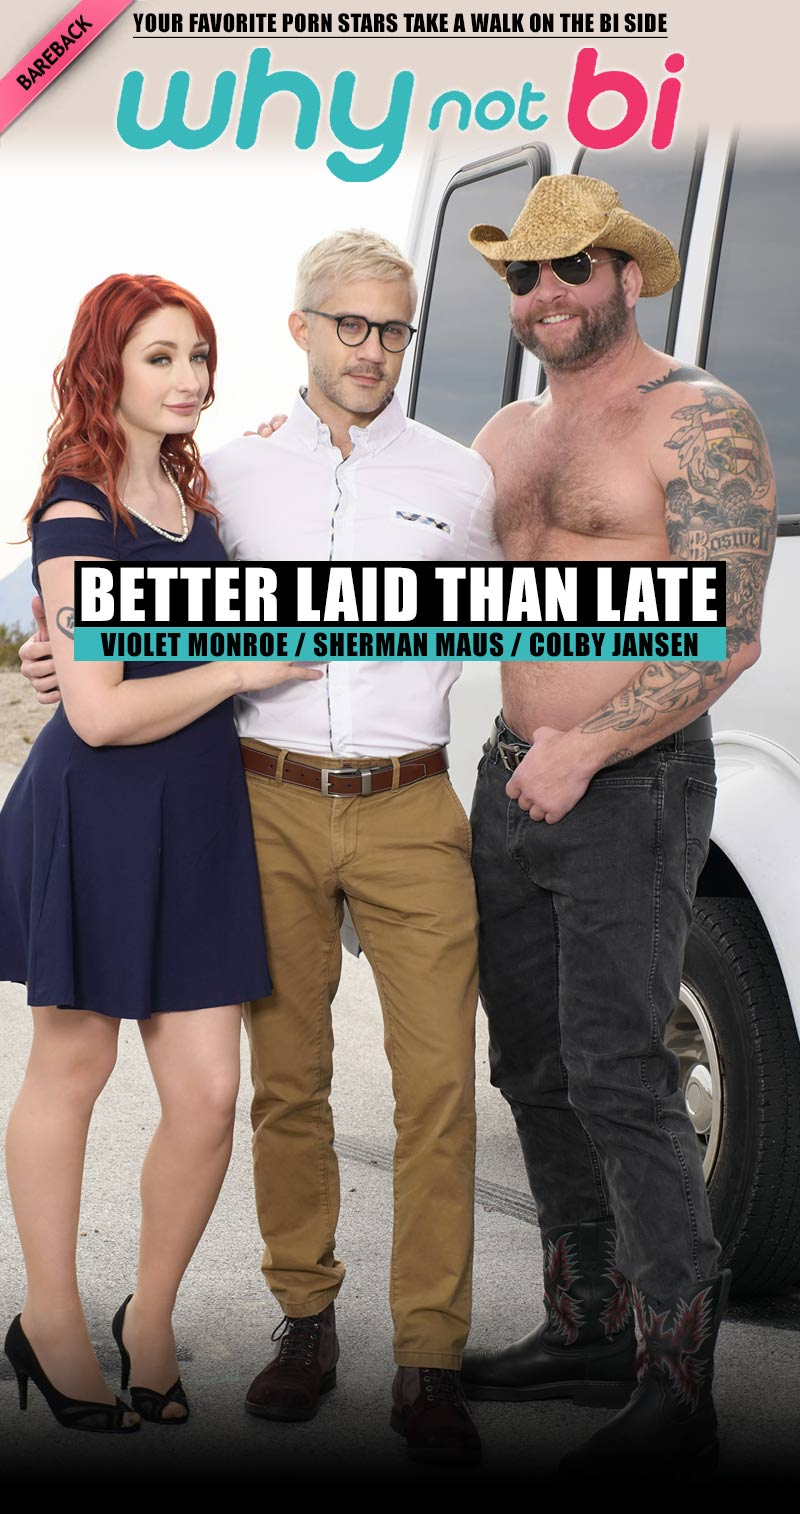 Better Laid Than Late (Sherman Maus, Colby Jansen and Violet Monroe) at WhyNotBi